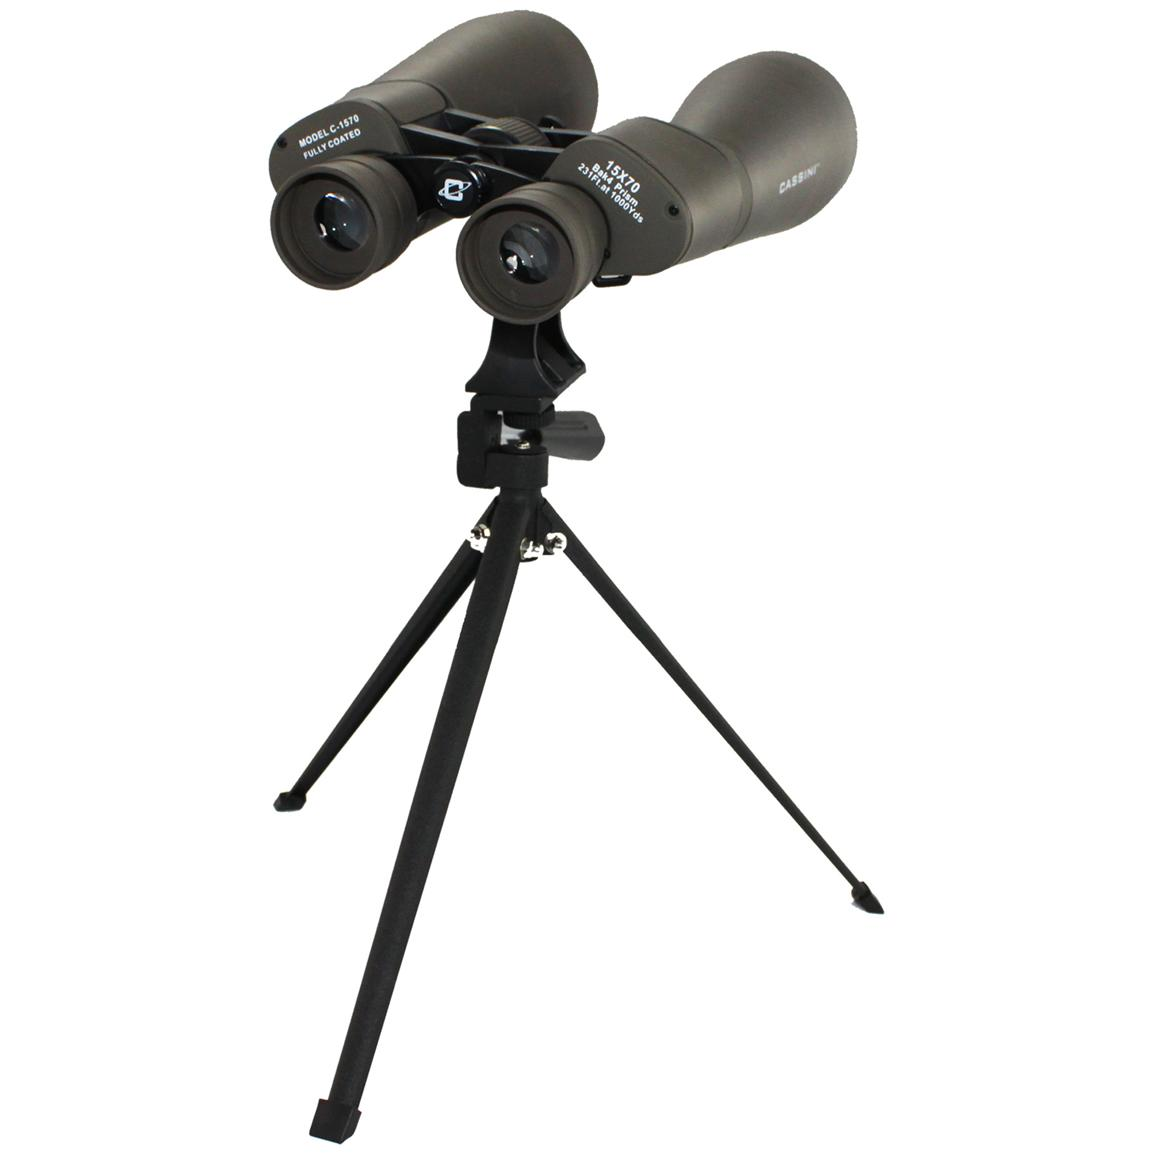 Includes table-top tripod, neck strap, lens cloth, and shouler case